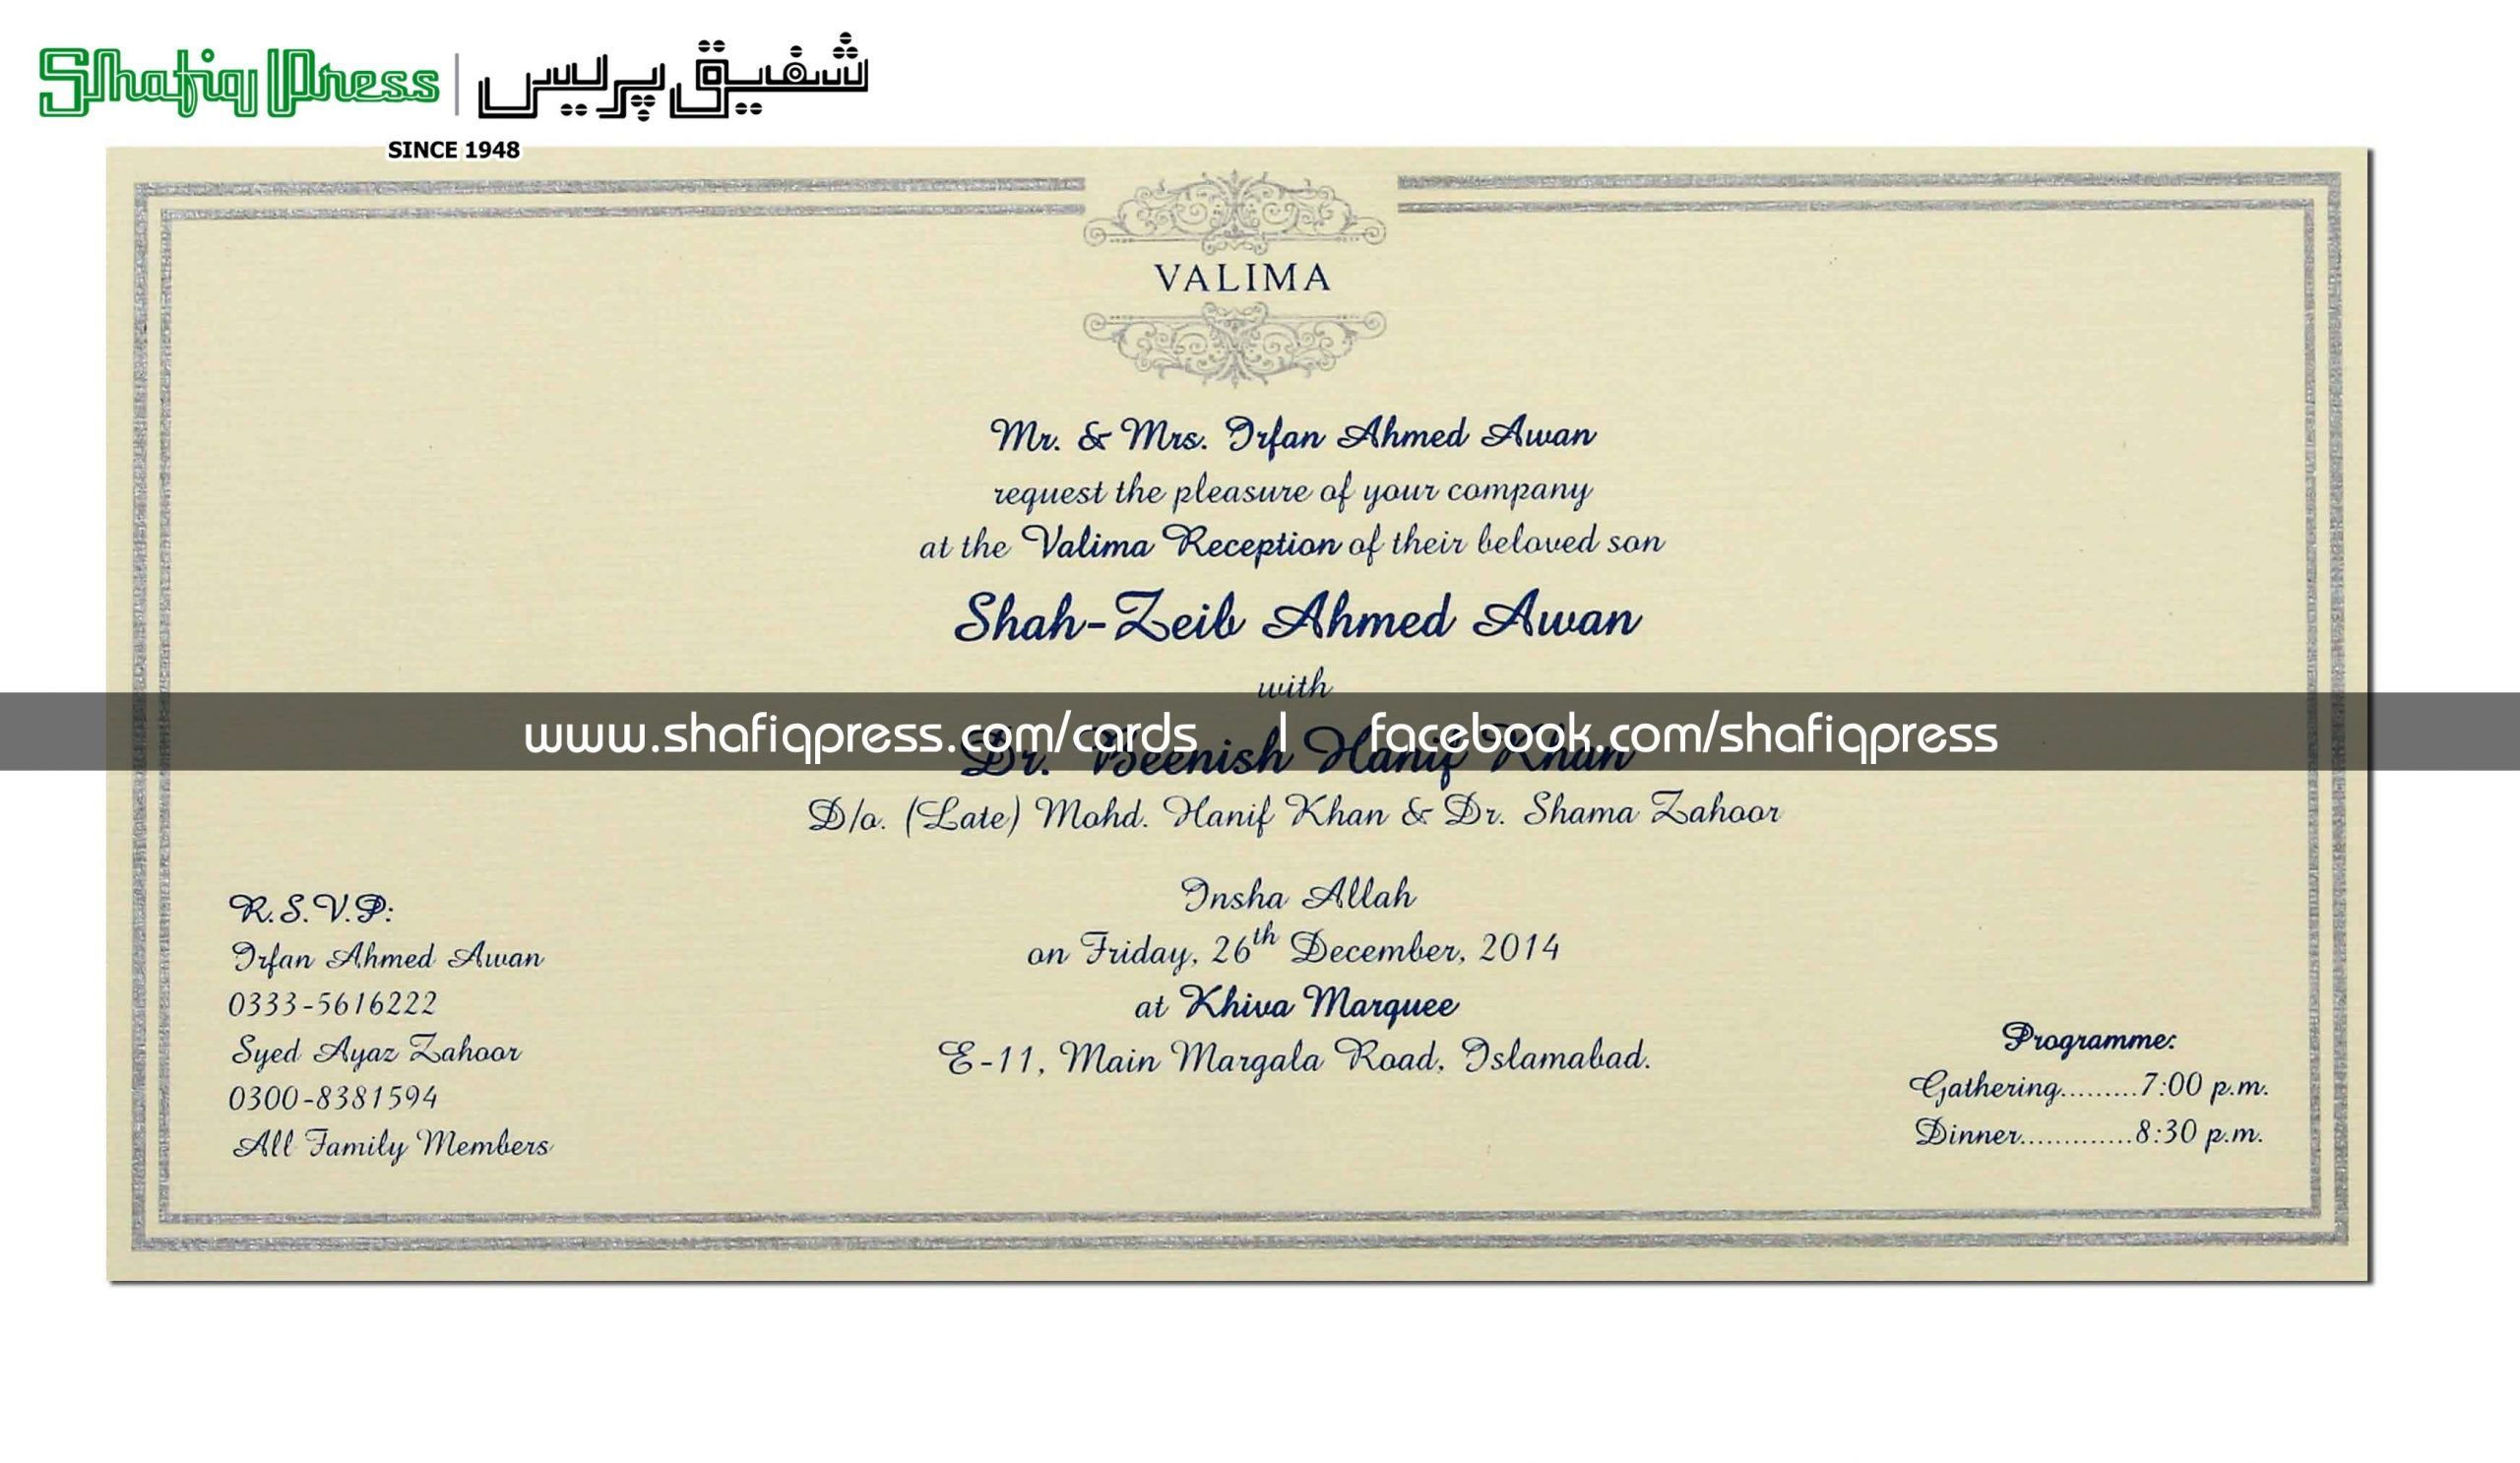 Marriage Card Printing Near Me For Newest Wedding Ideas Makeit